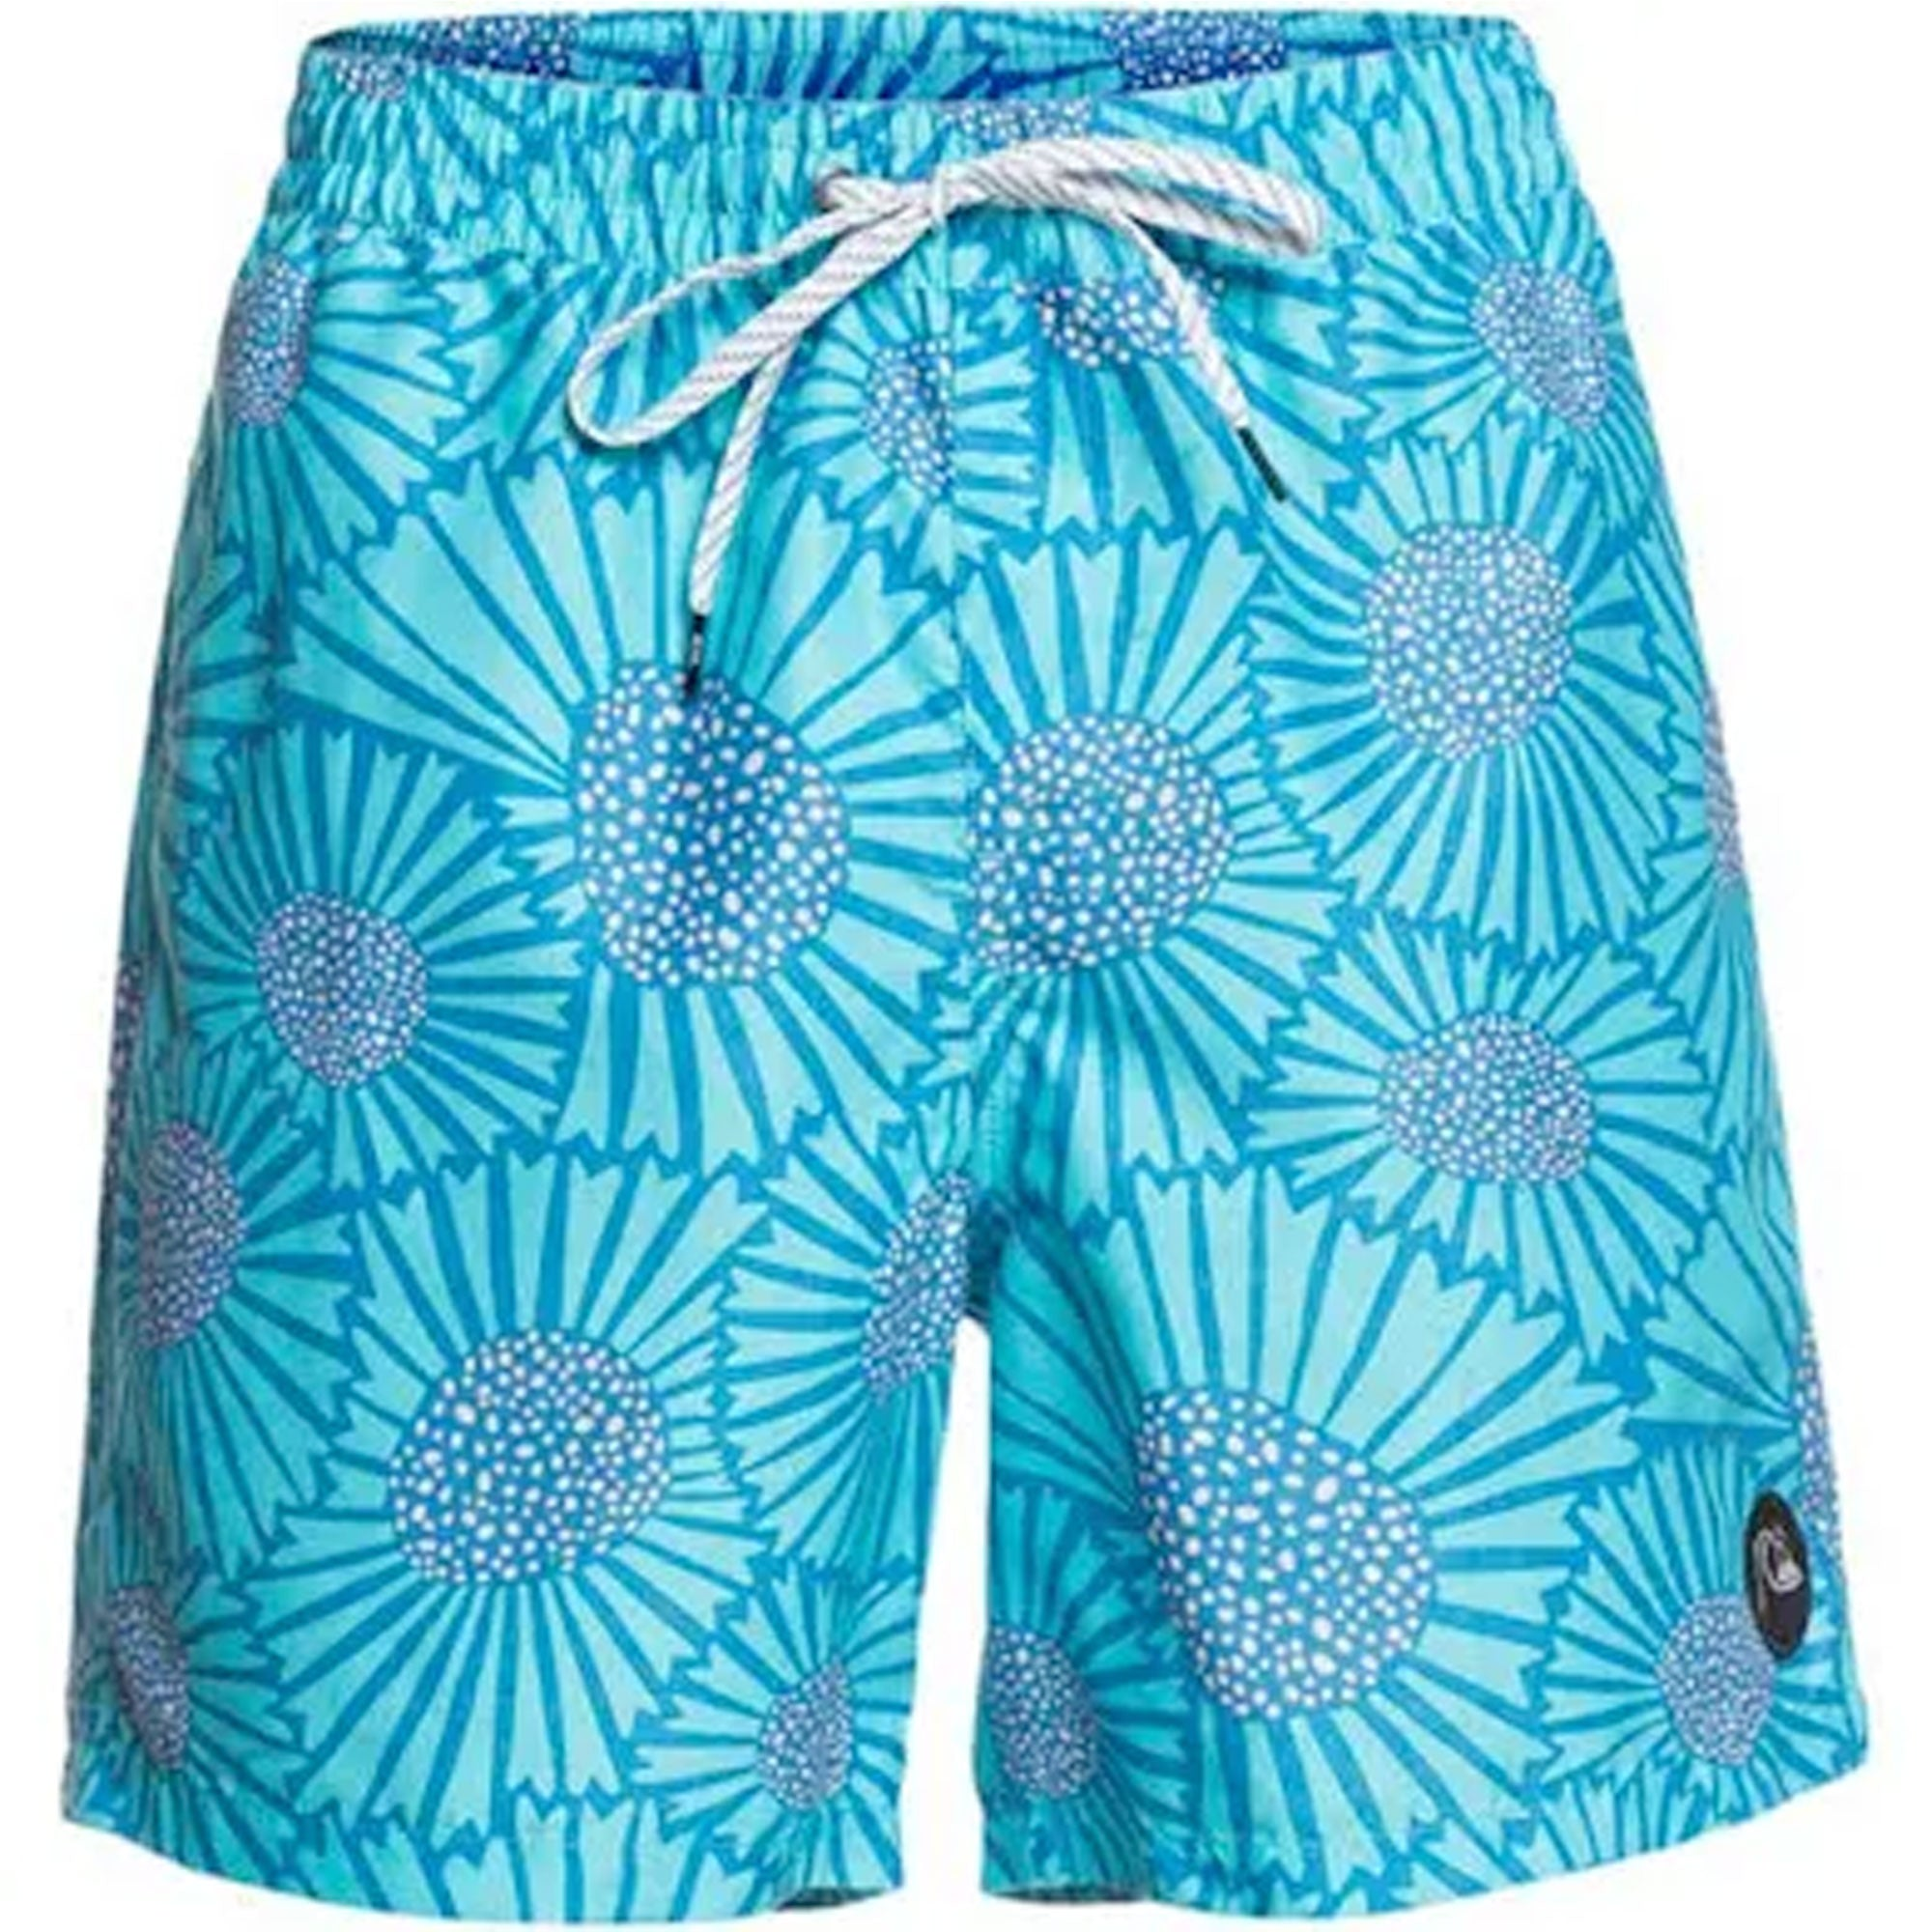 "Quiksilver Micro Dose Volley 17"" Men's Beachshorts"